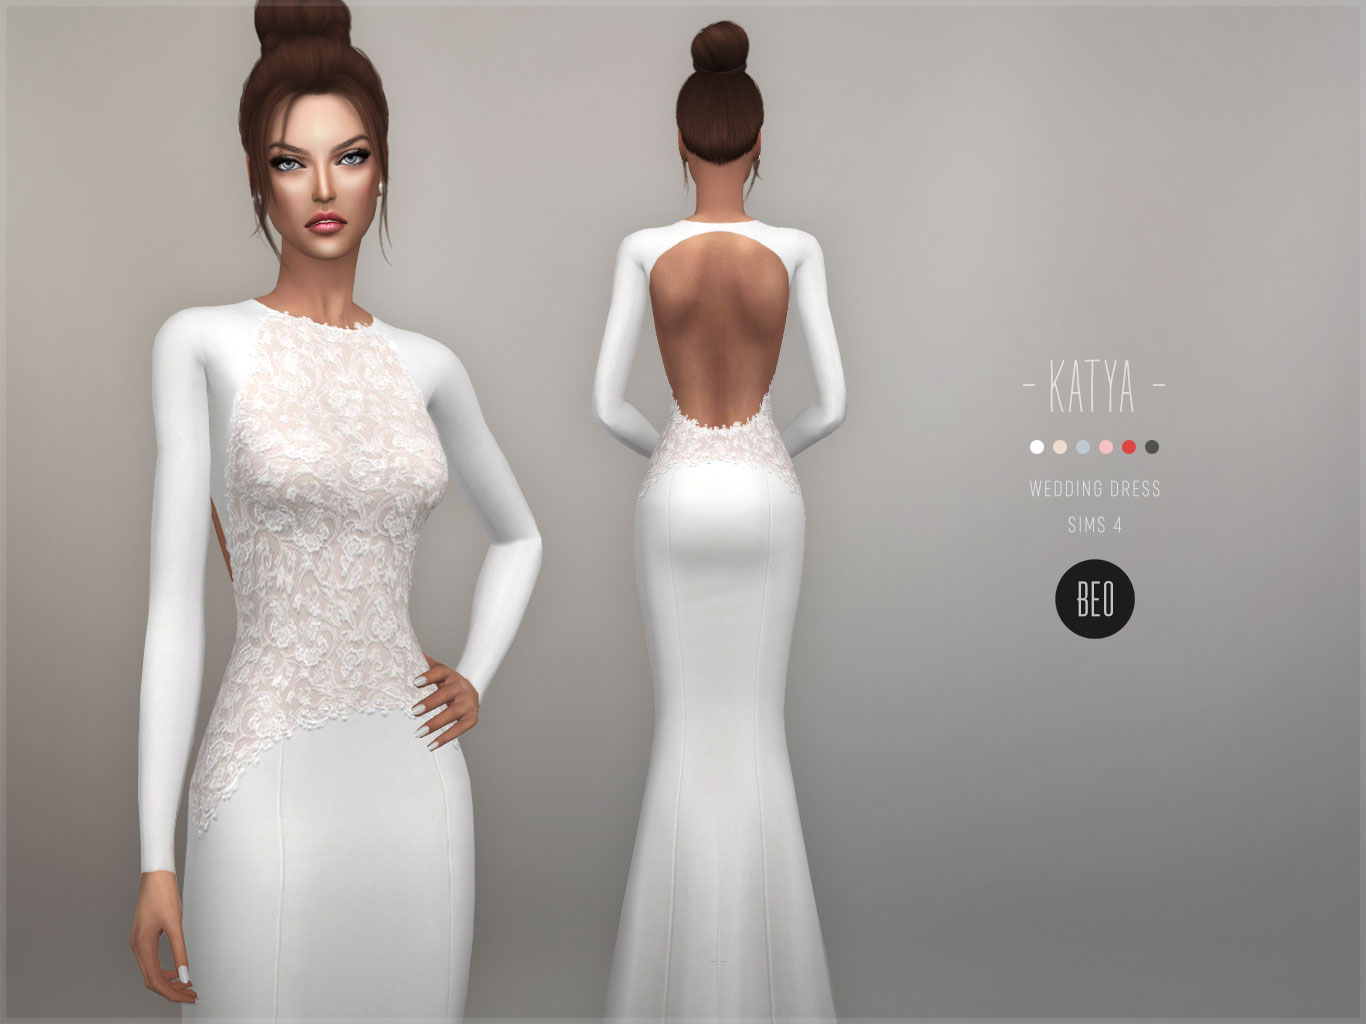 Wedding dress - Katya for The Sims 4 by BEO